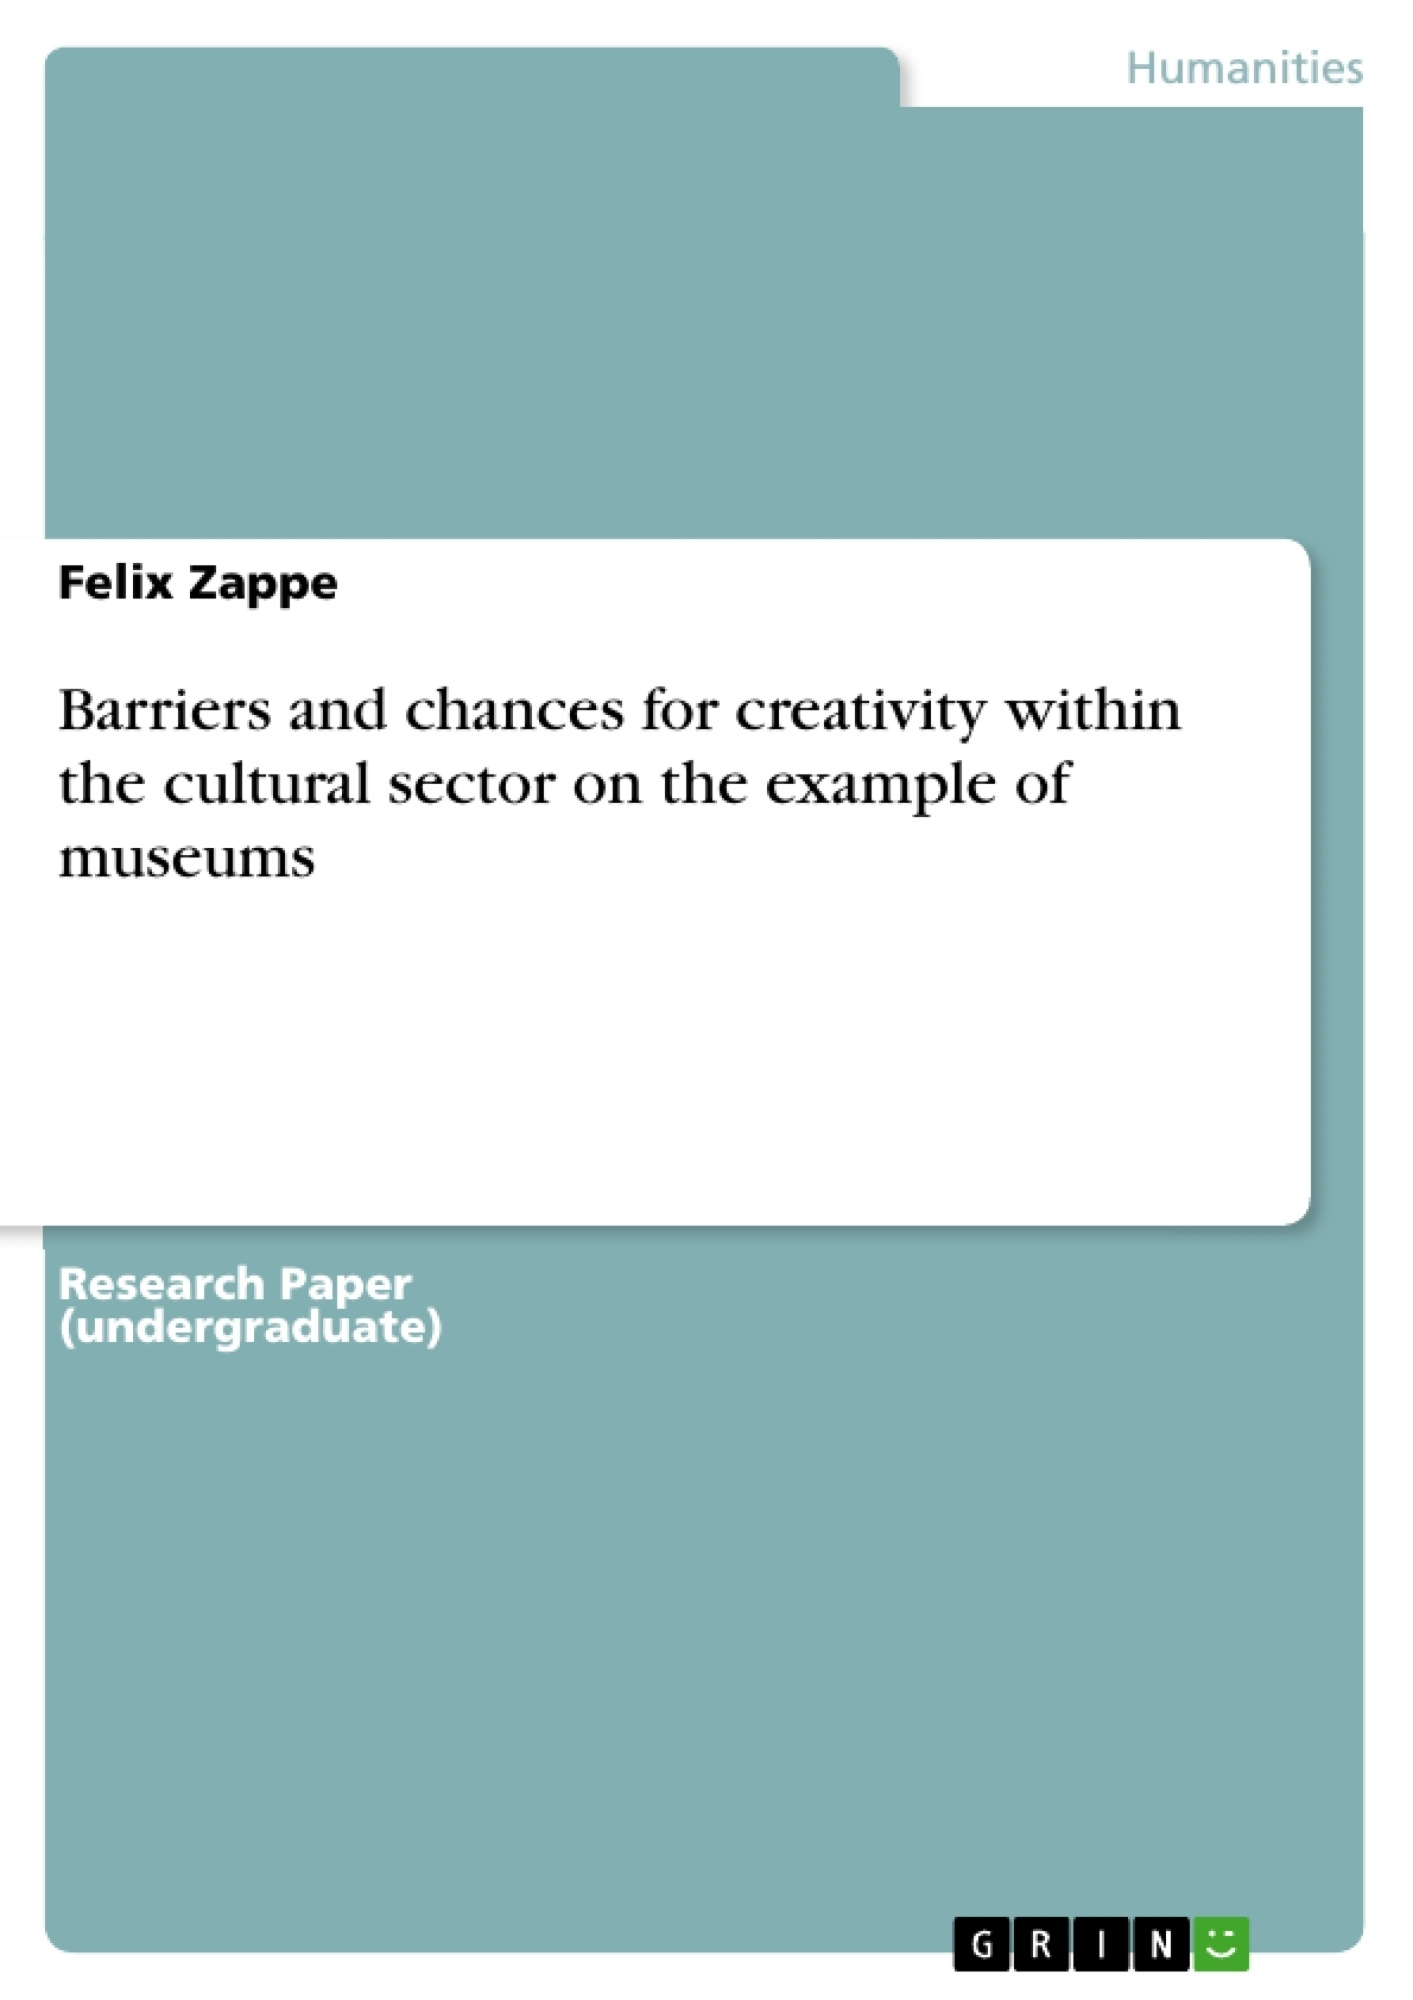 Title: Barriers and chances for creativity within the cultural sector on the example of museums